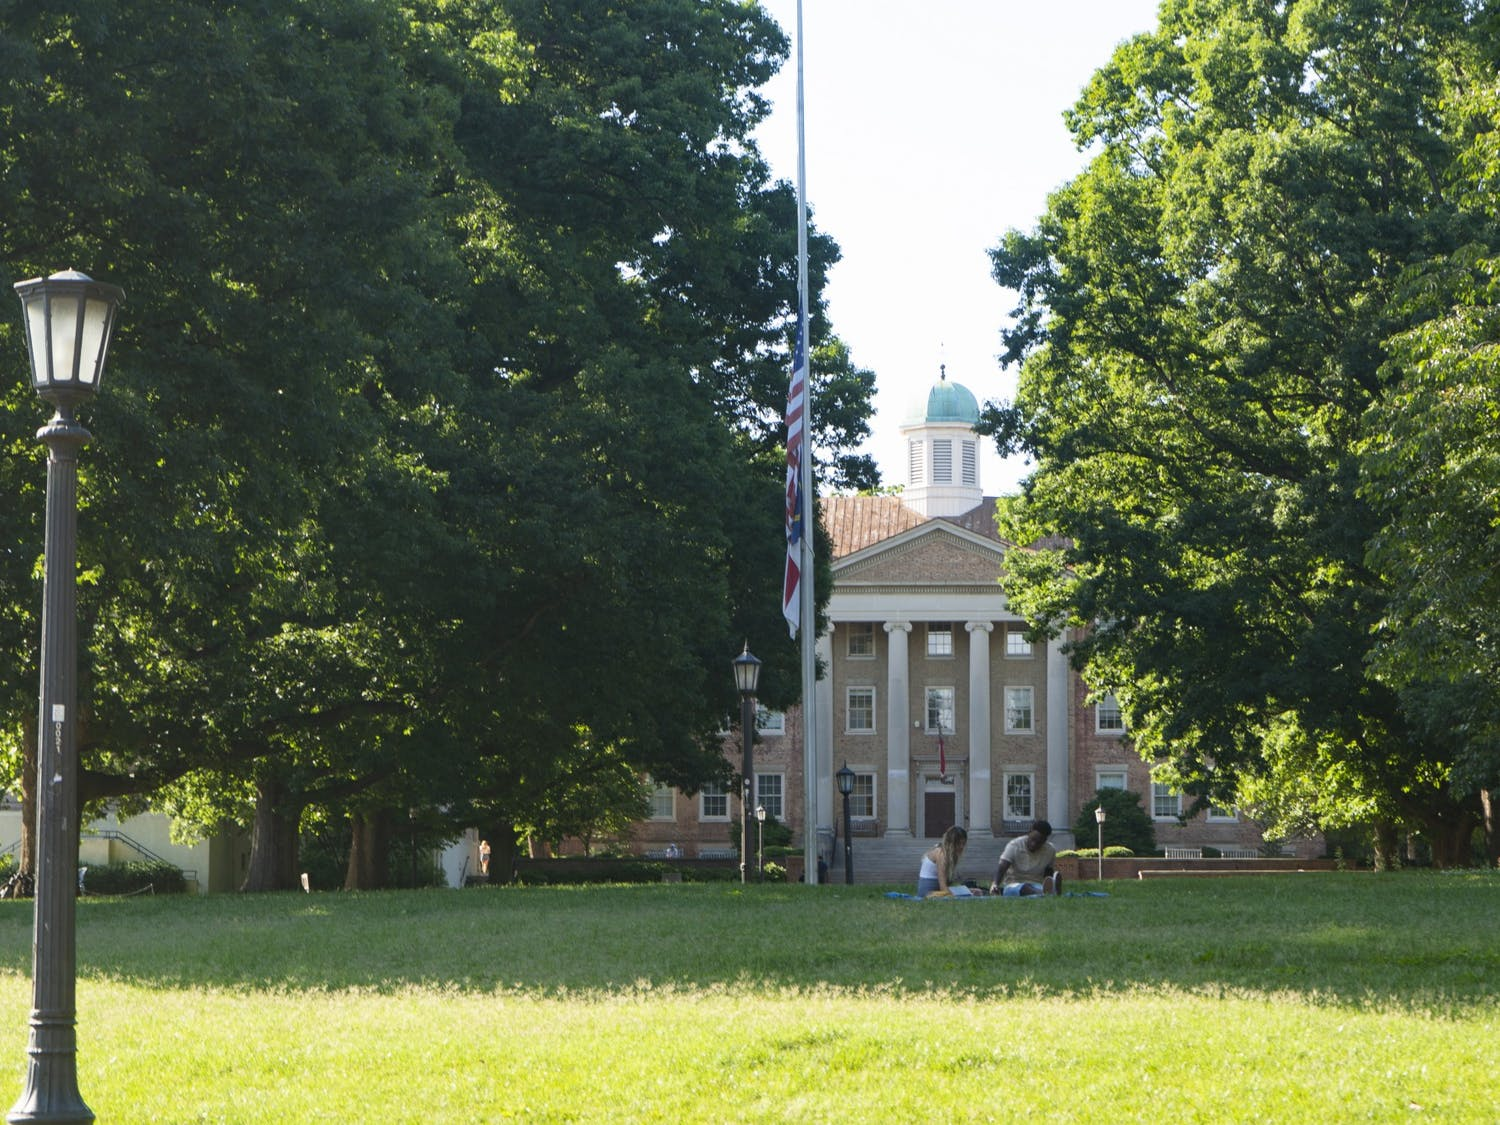 View of South Building from Polk Place, or the quad, on Sunday, June 7, 2020.